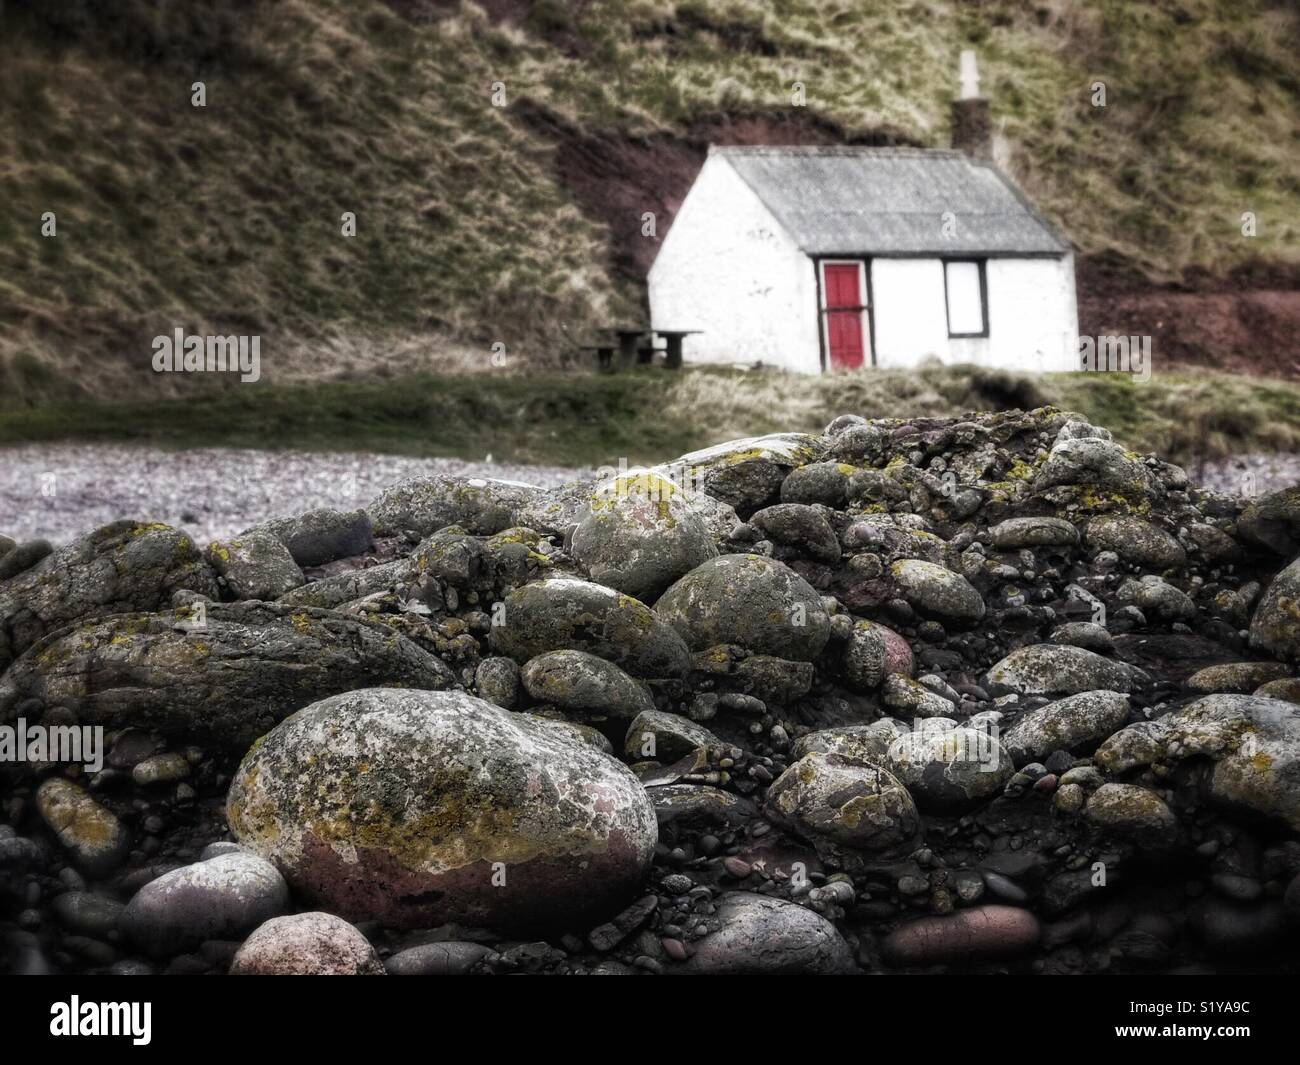 Small hut on beach, East coast of Scotland, UK Stock Photo